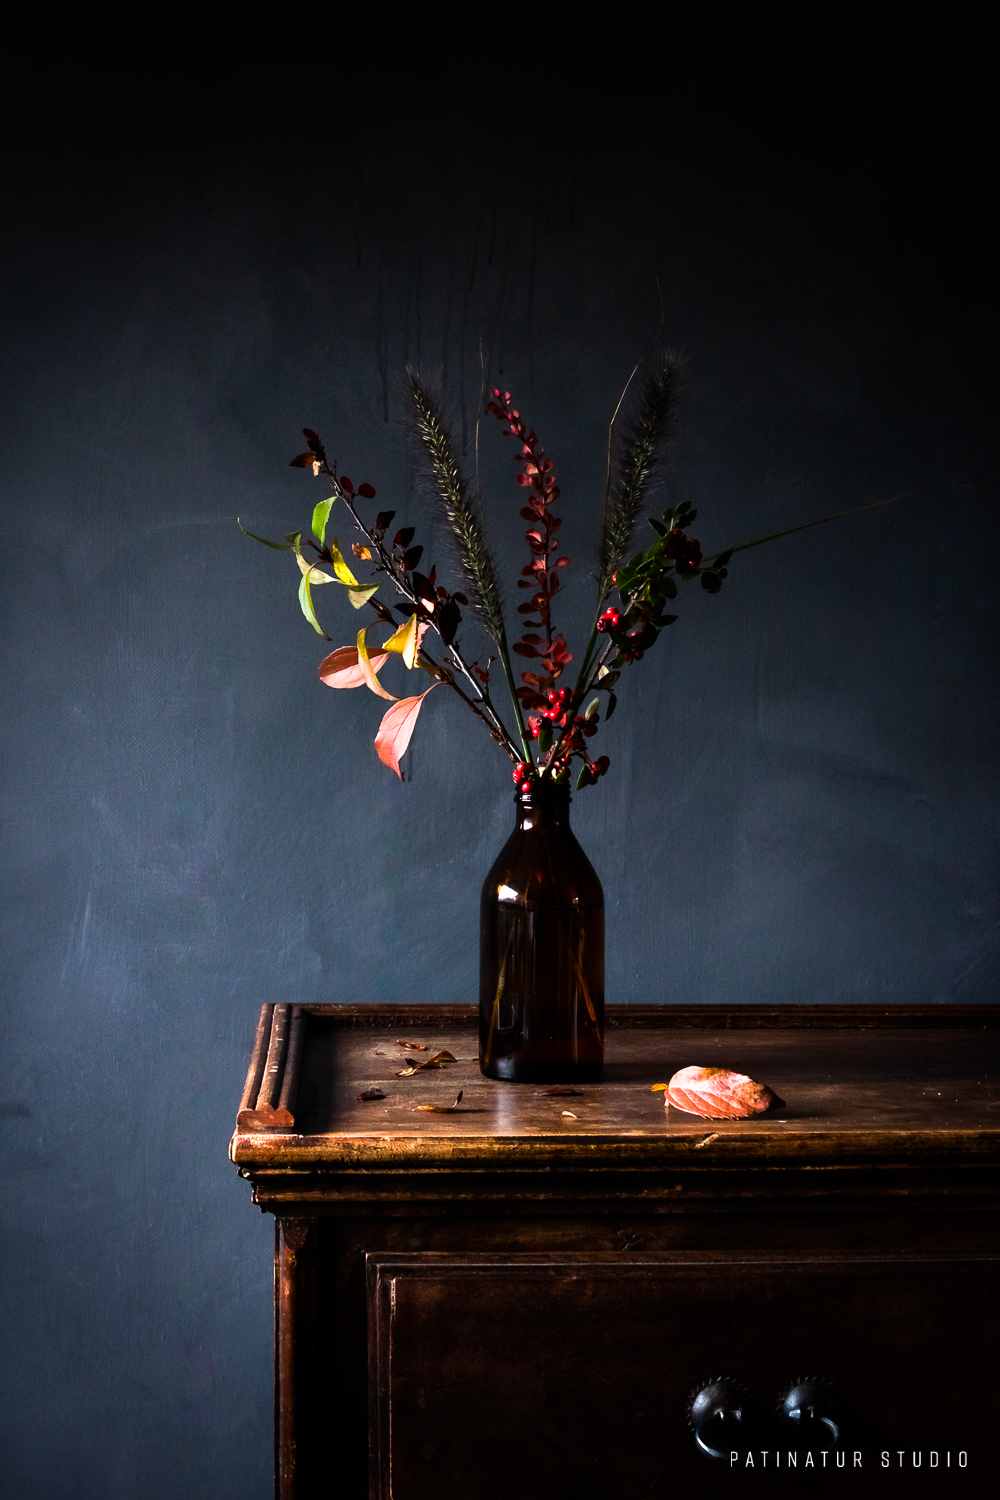 Photo art | Dark and moody still life with branches with leaves in autumn colours and Pennisetum in brown glass bottle